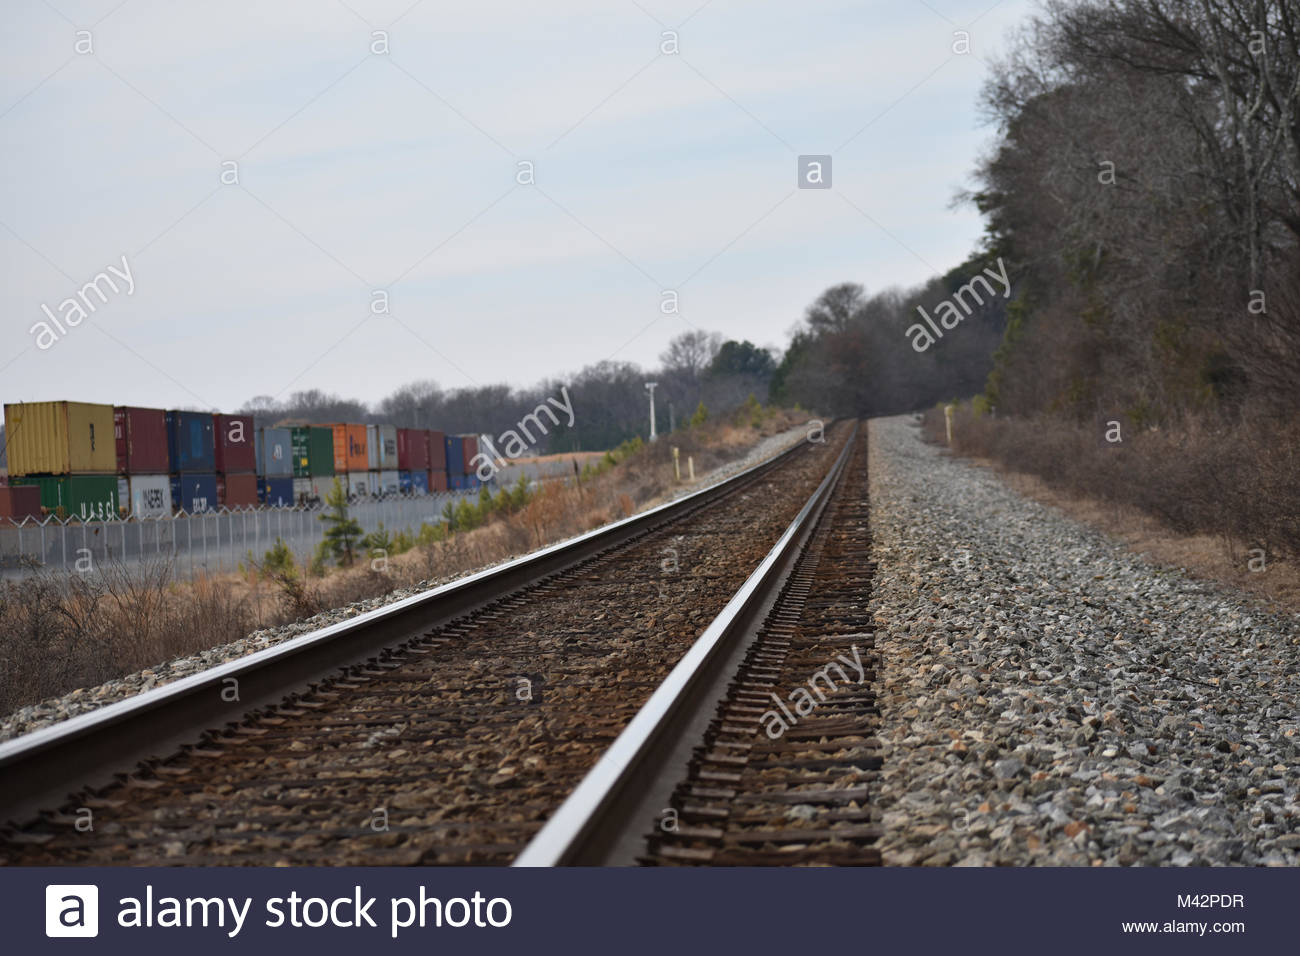 Rail tracks near an intermodal freight yard in USA - Stock Image